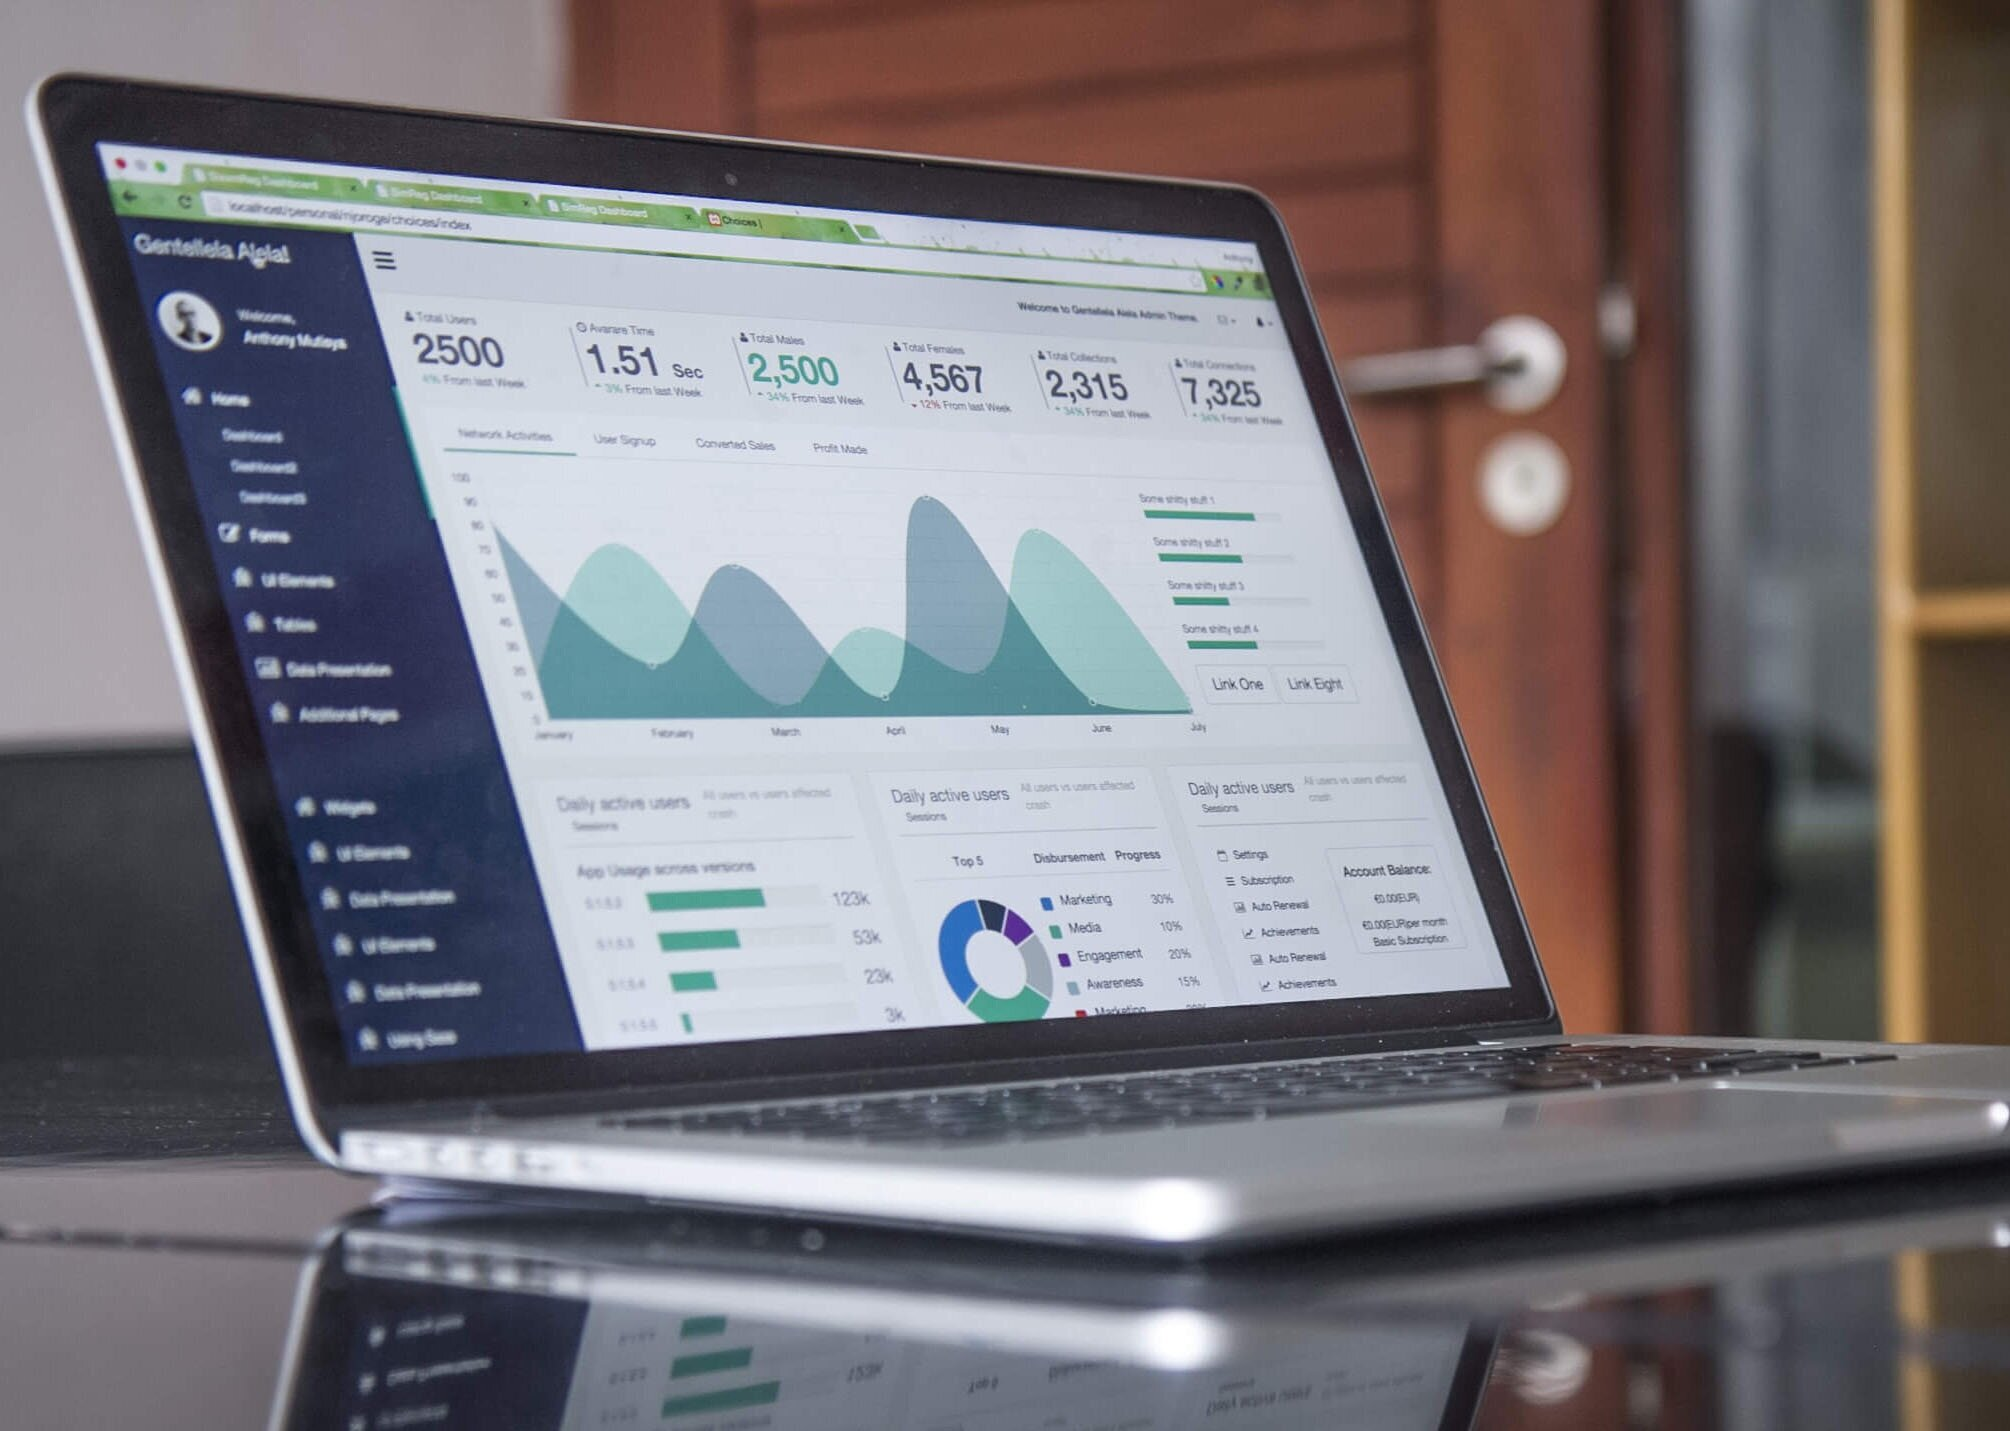 Top 10 Features of a CRM - Is your CRM working for you?